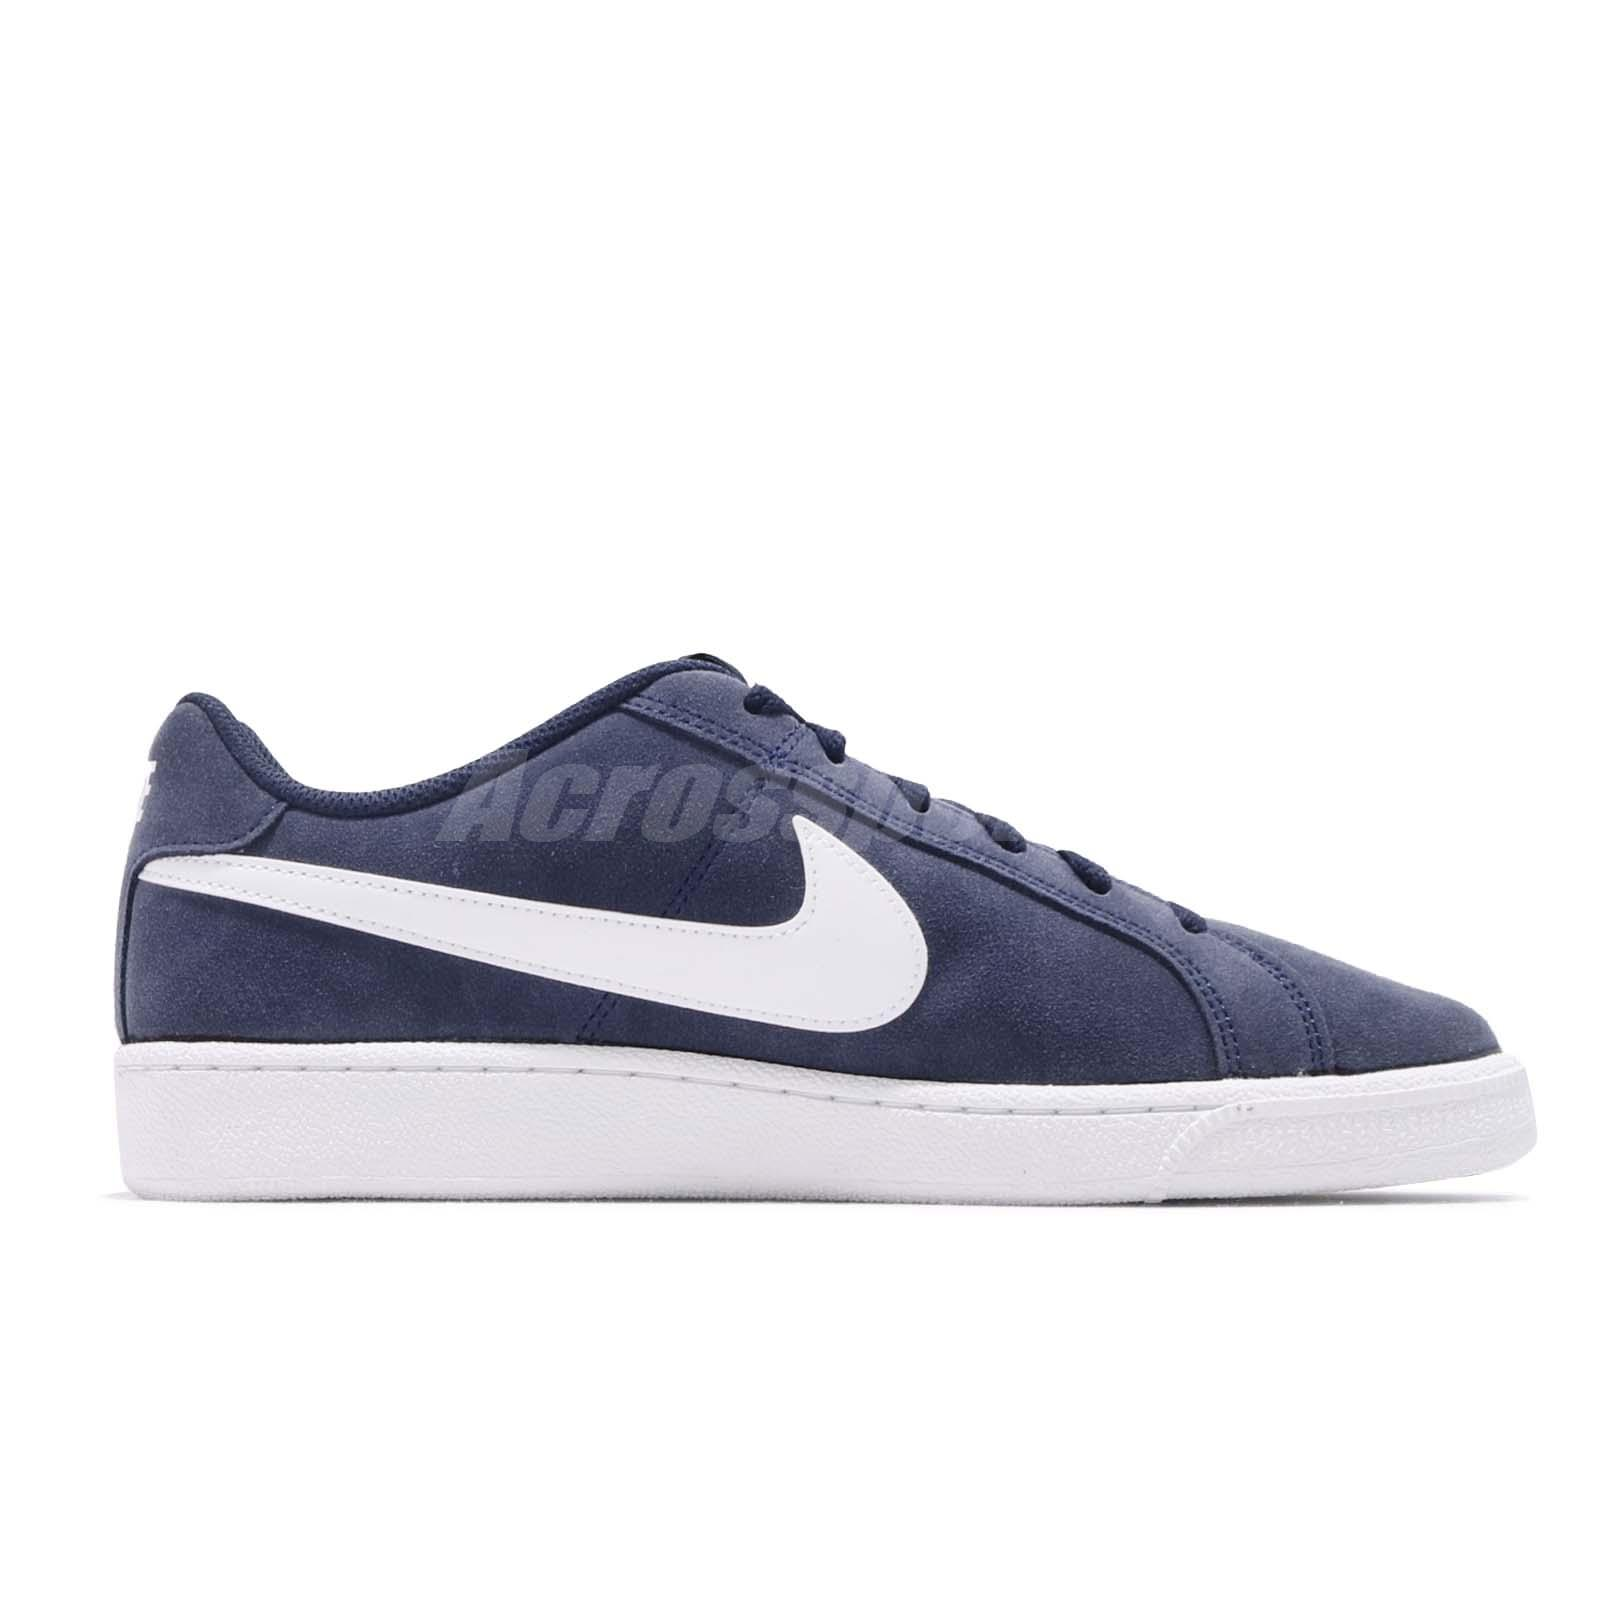 0a9914f4e85 Nike Court Royale Suede Midnight Navy White Men Casual Shoes ...